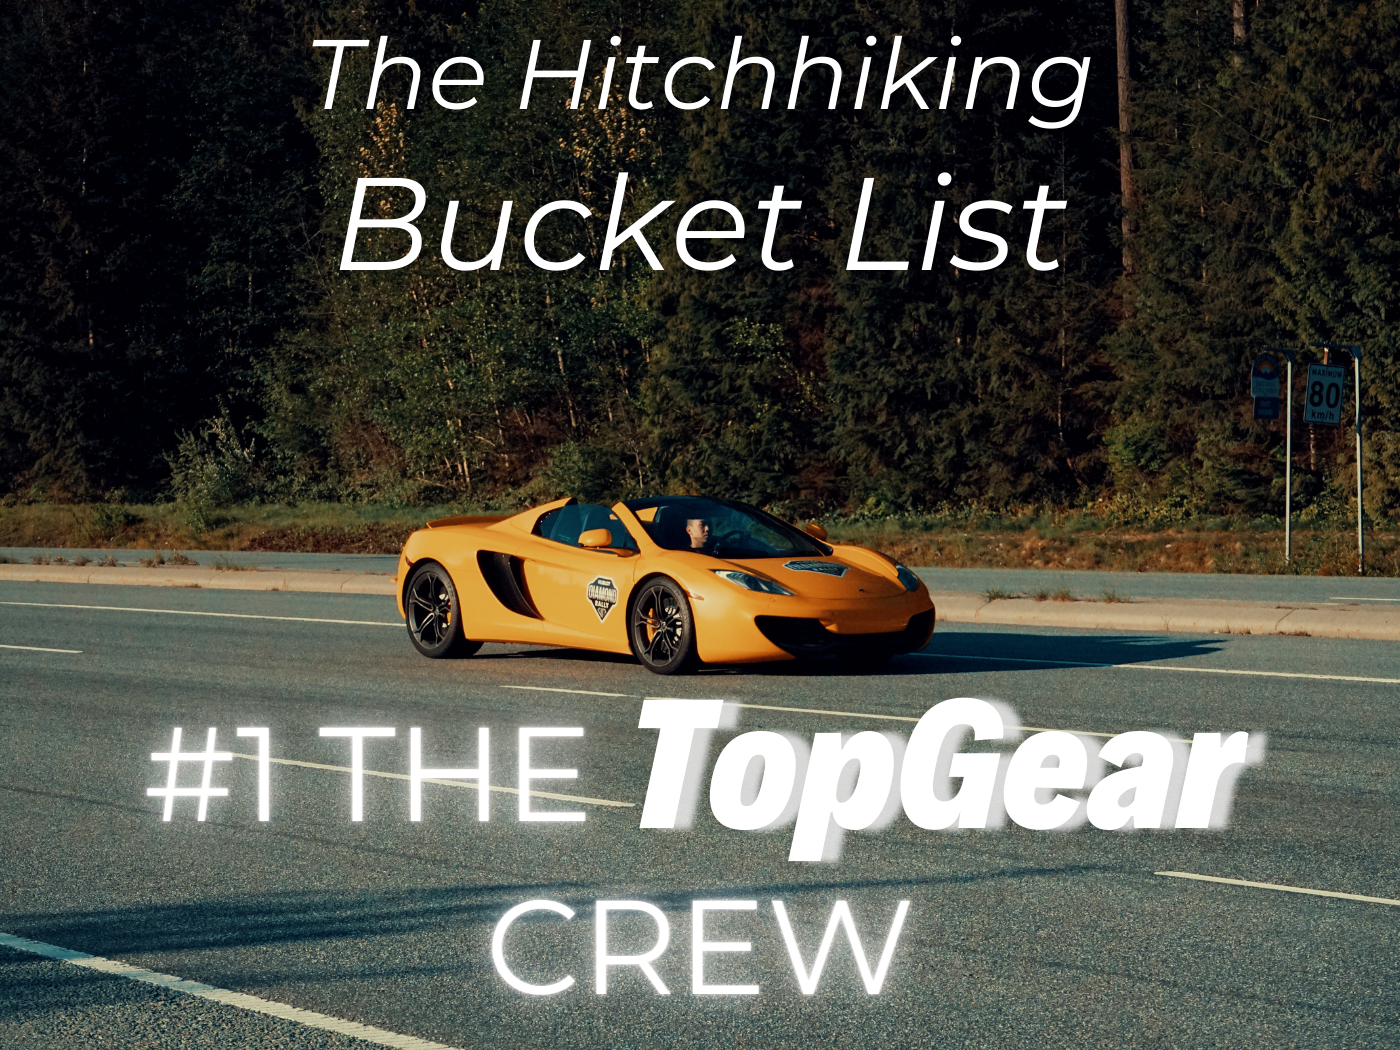 number 1 hitchhiking bucket list the top gear crew topgear